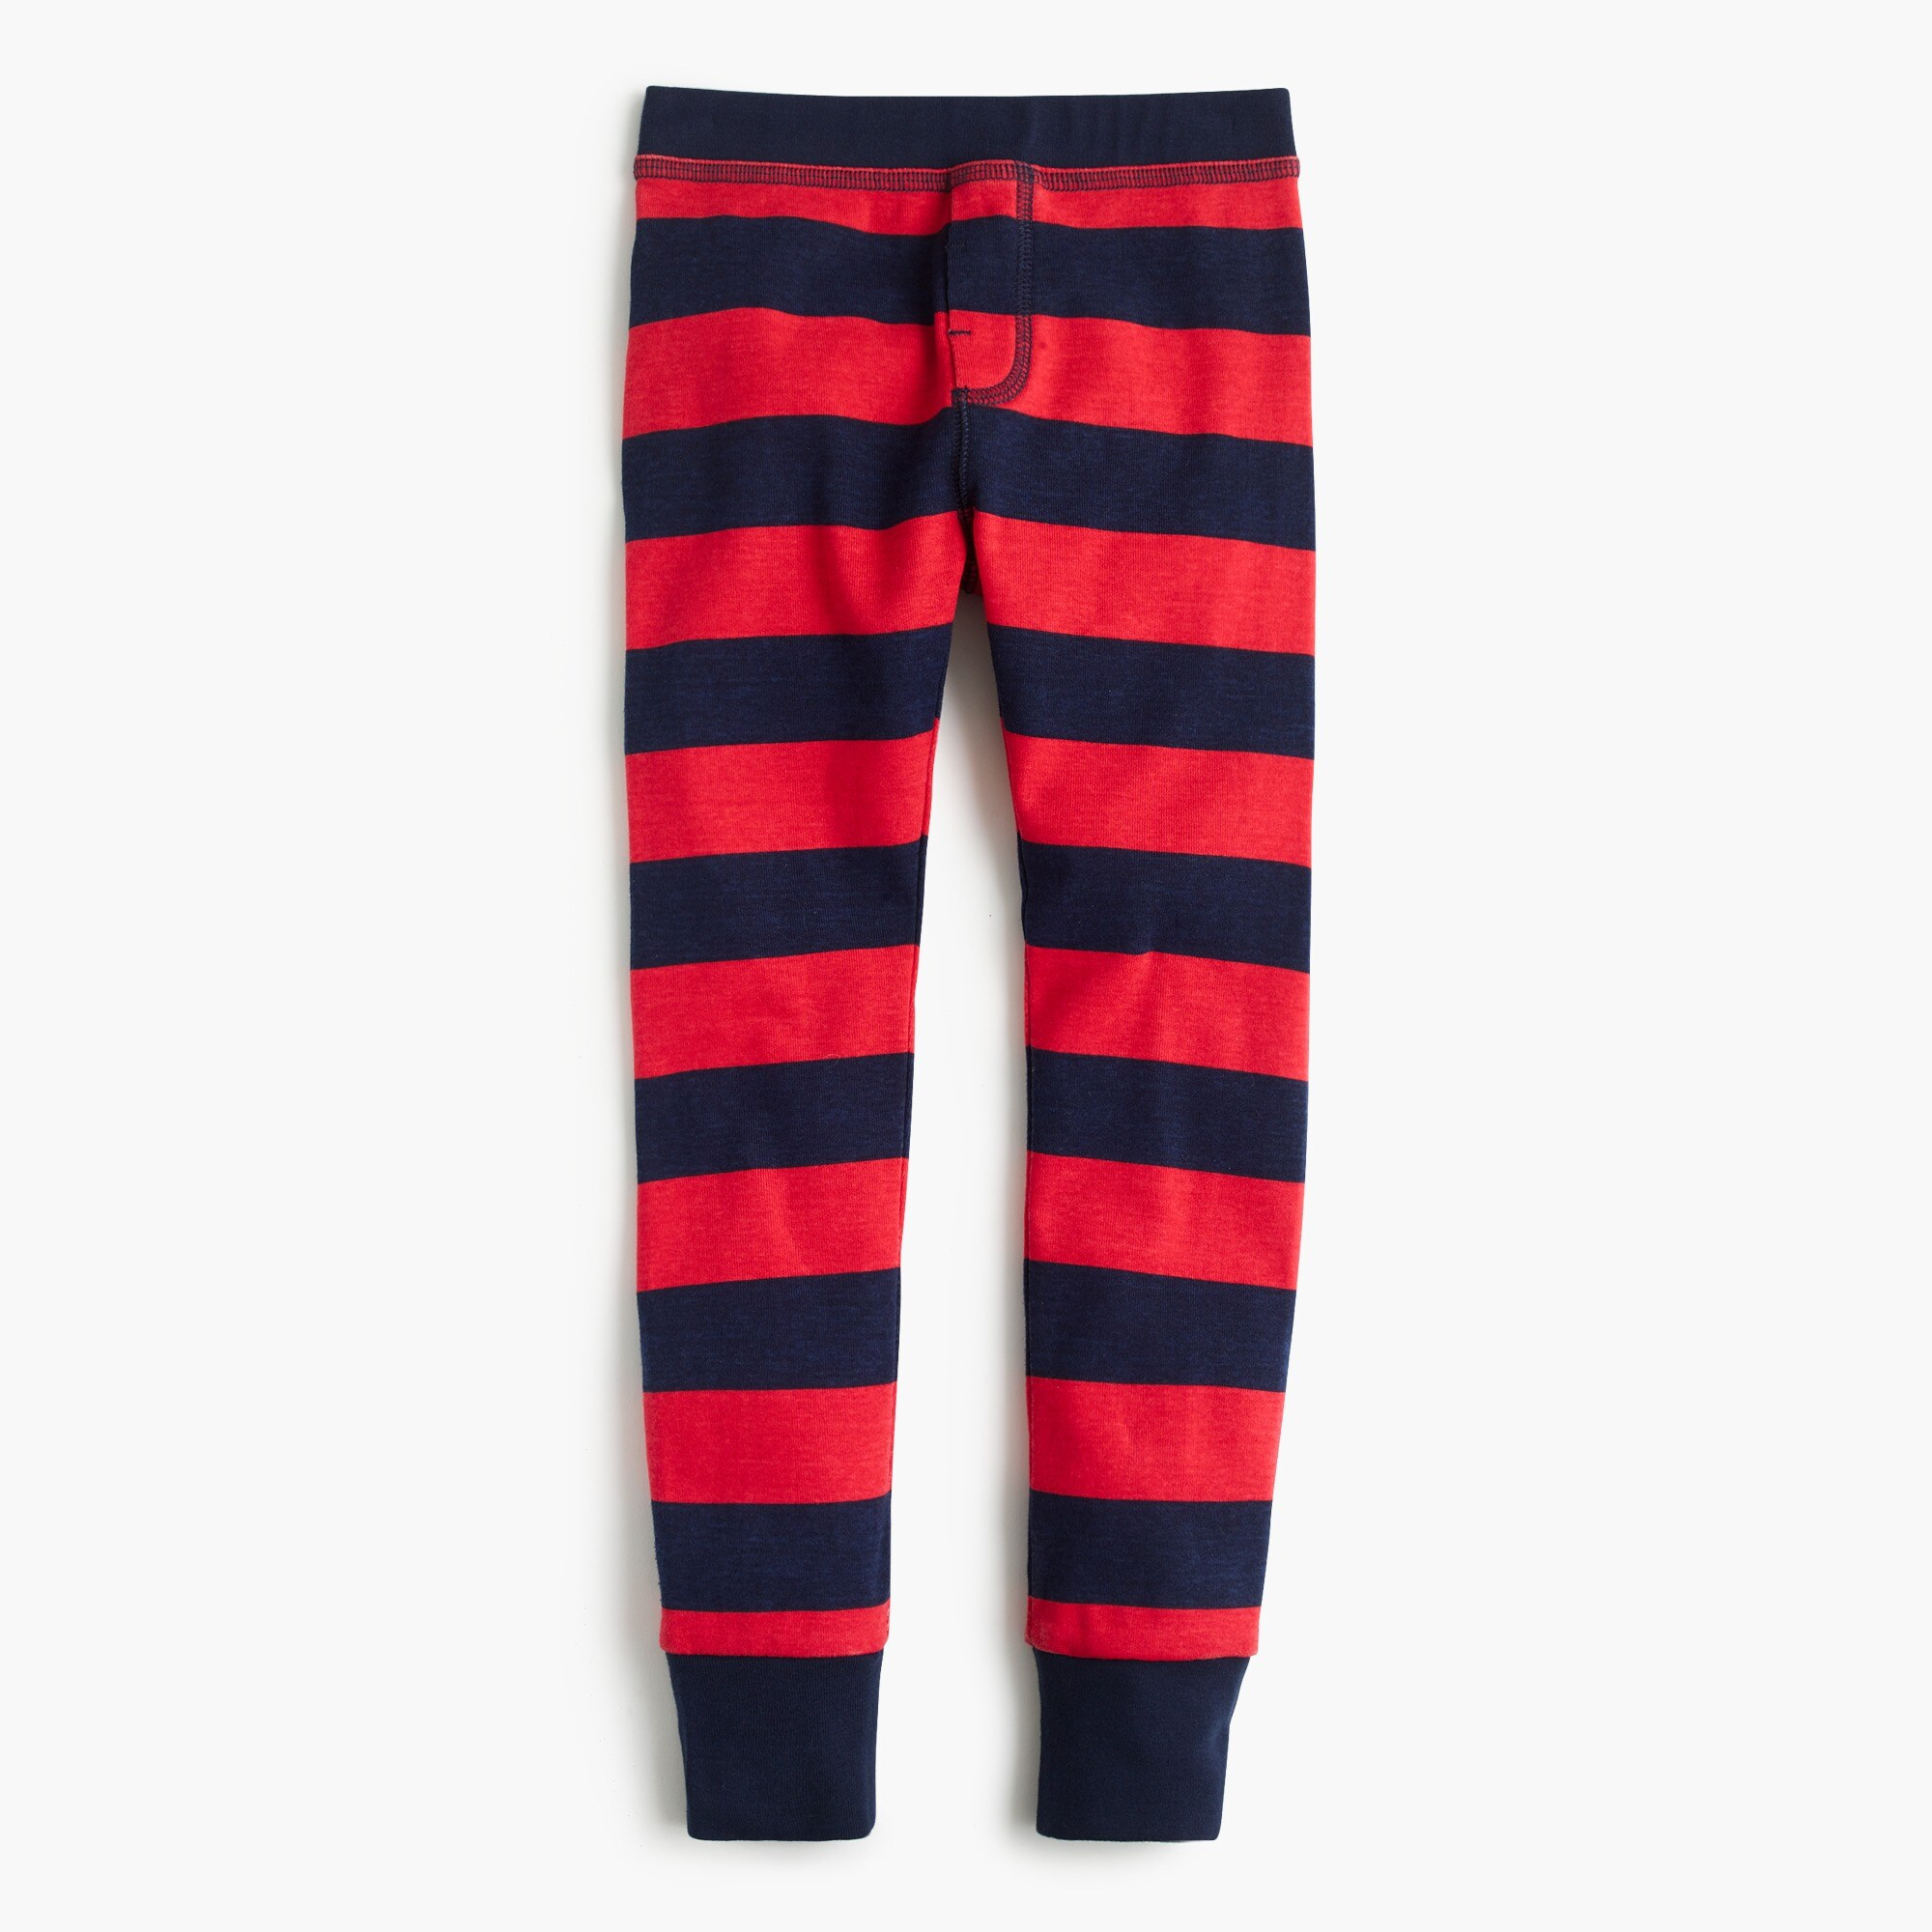 Image 3 for Kids' pajama set in red stripes